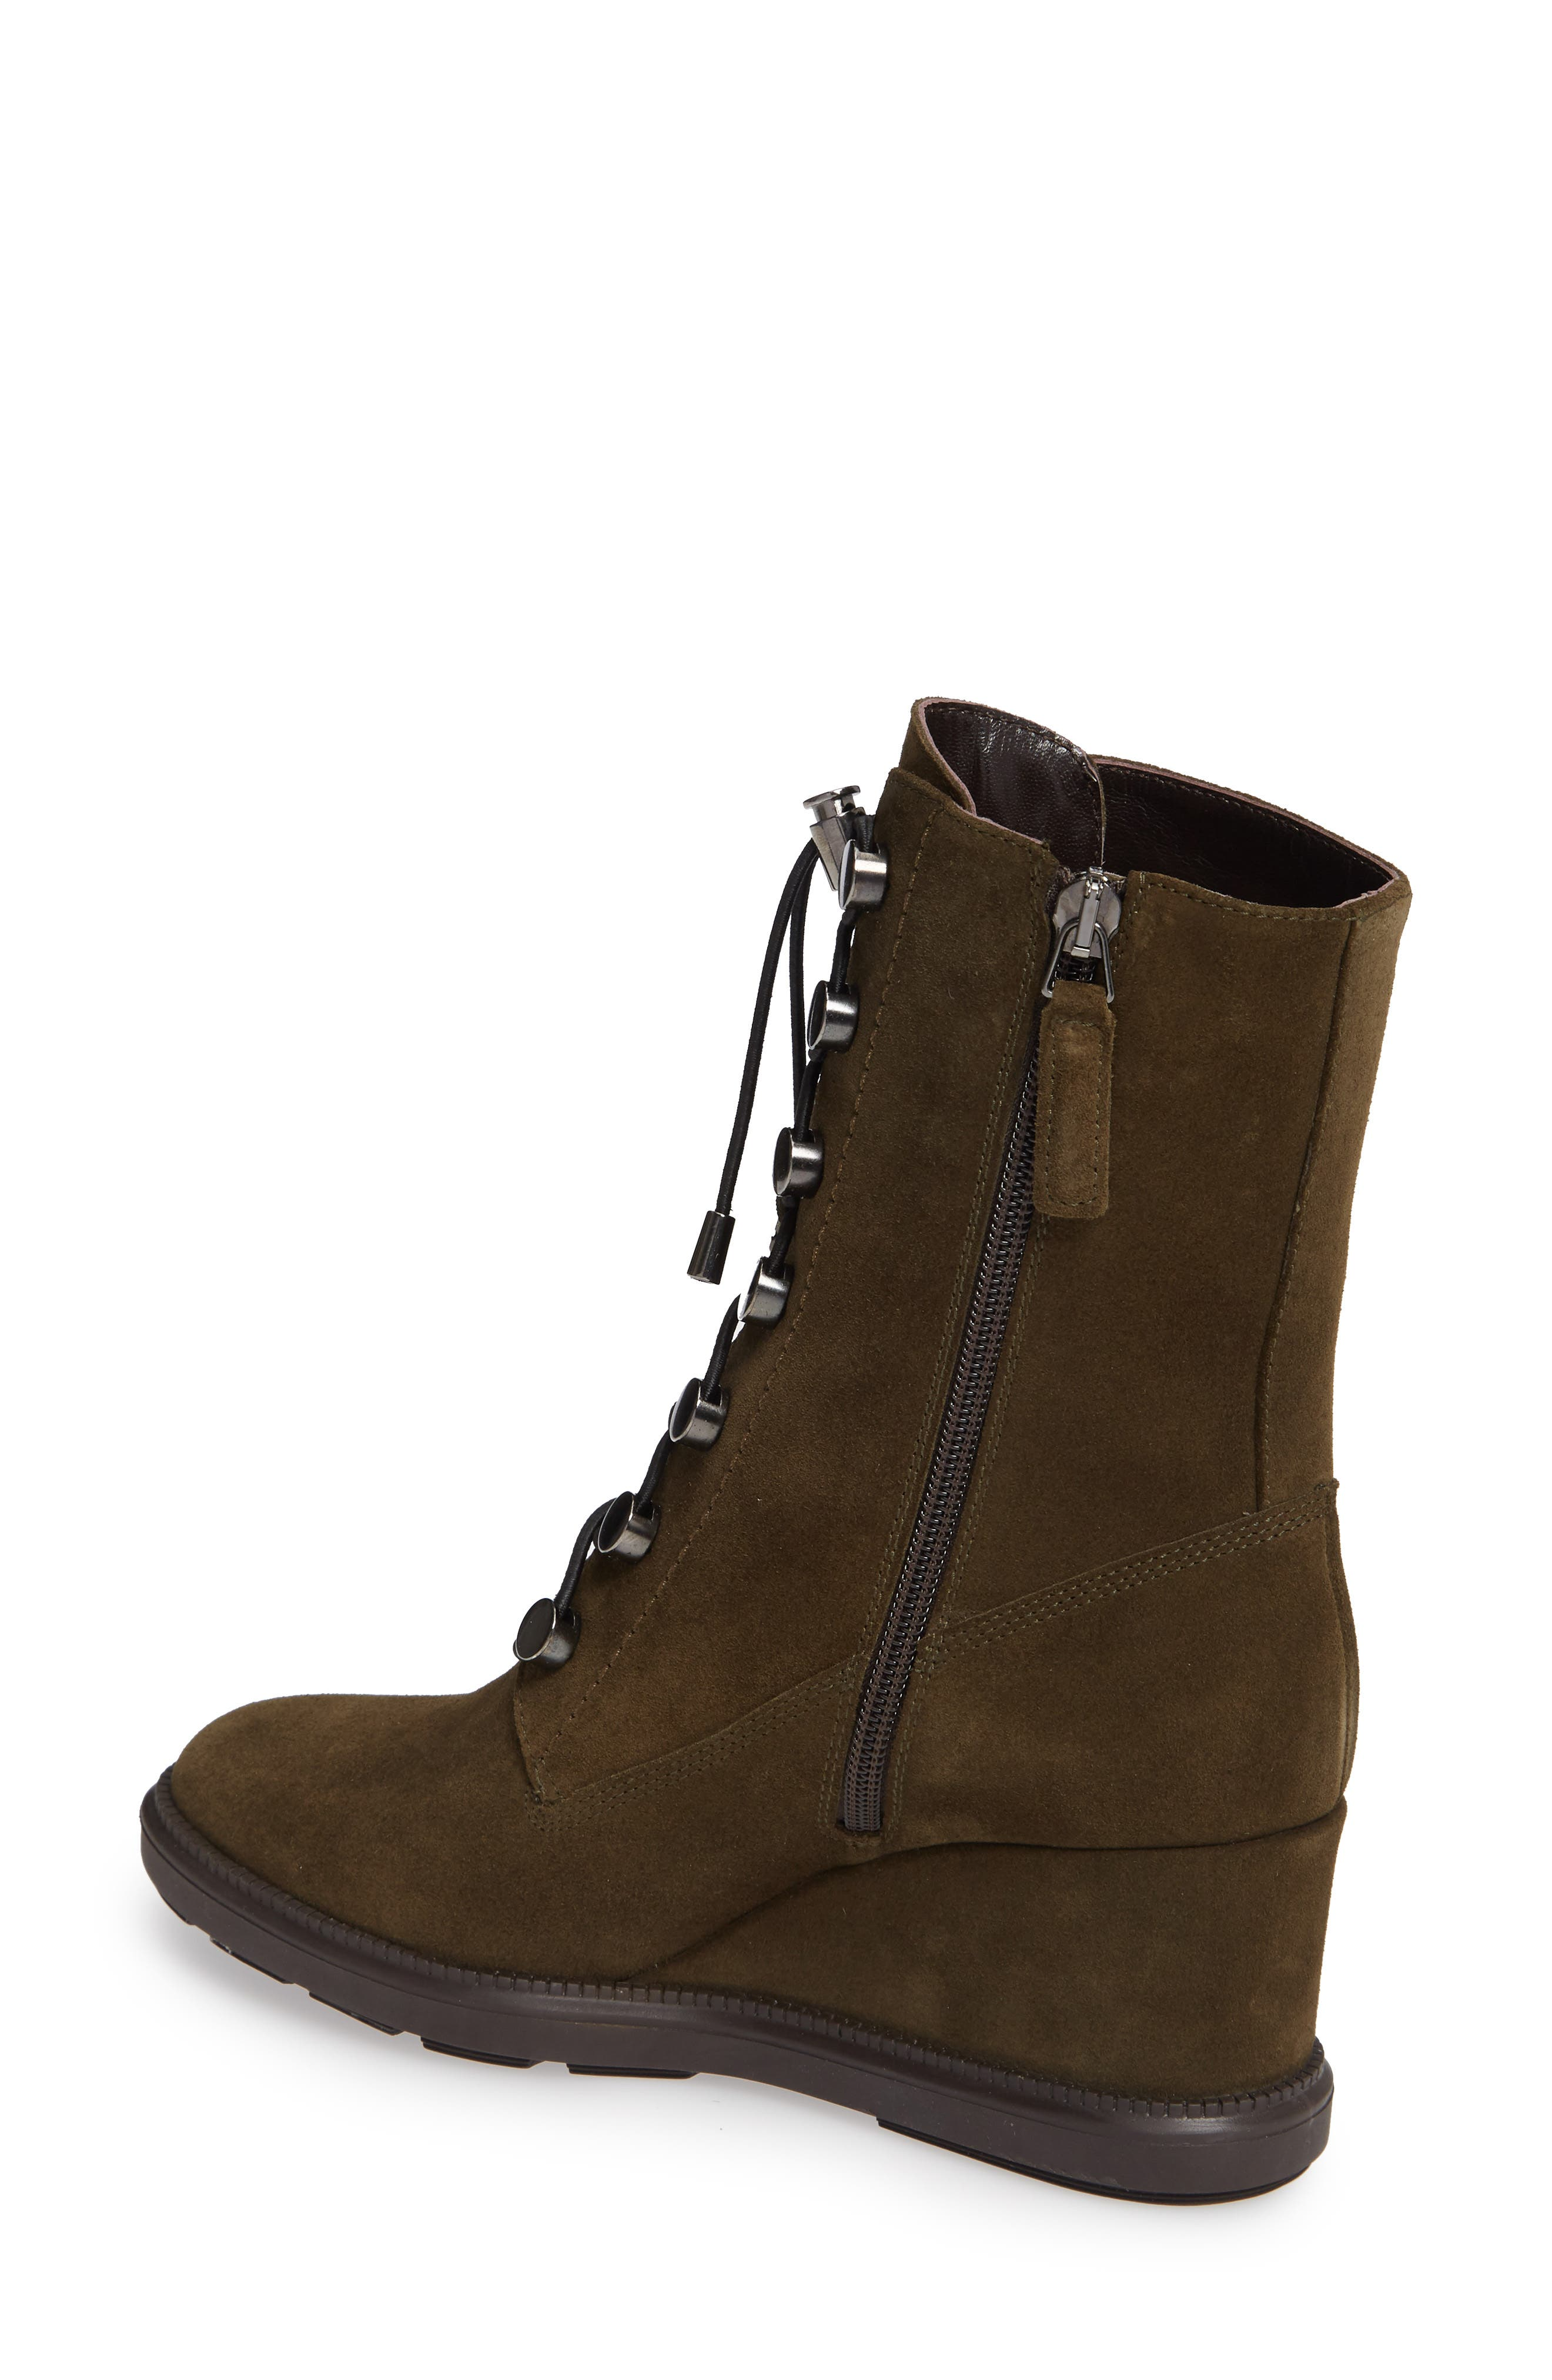 Campbell Wedge Boot,                             Alternate thumbnail 2, color,                             HERB SUEDE